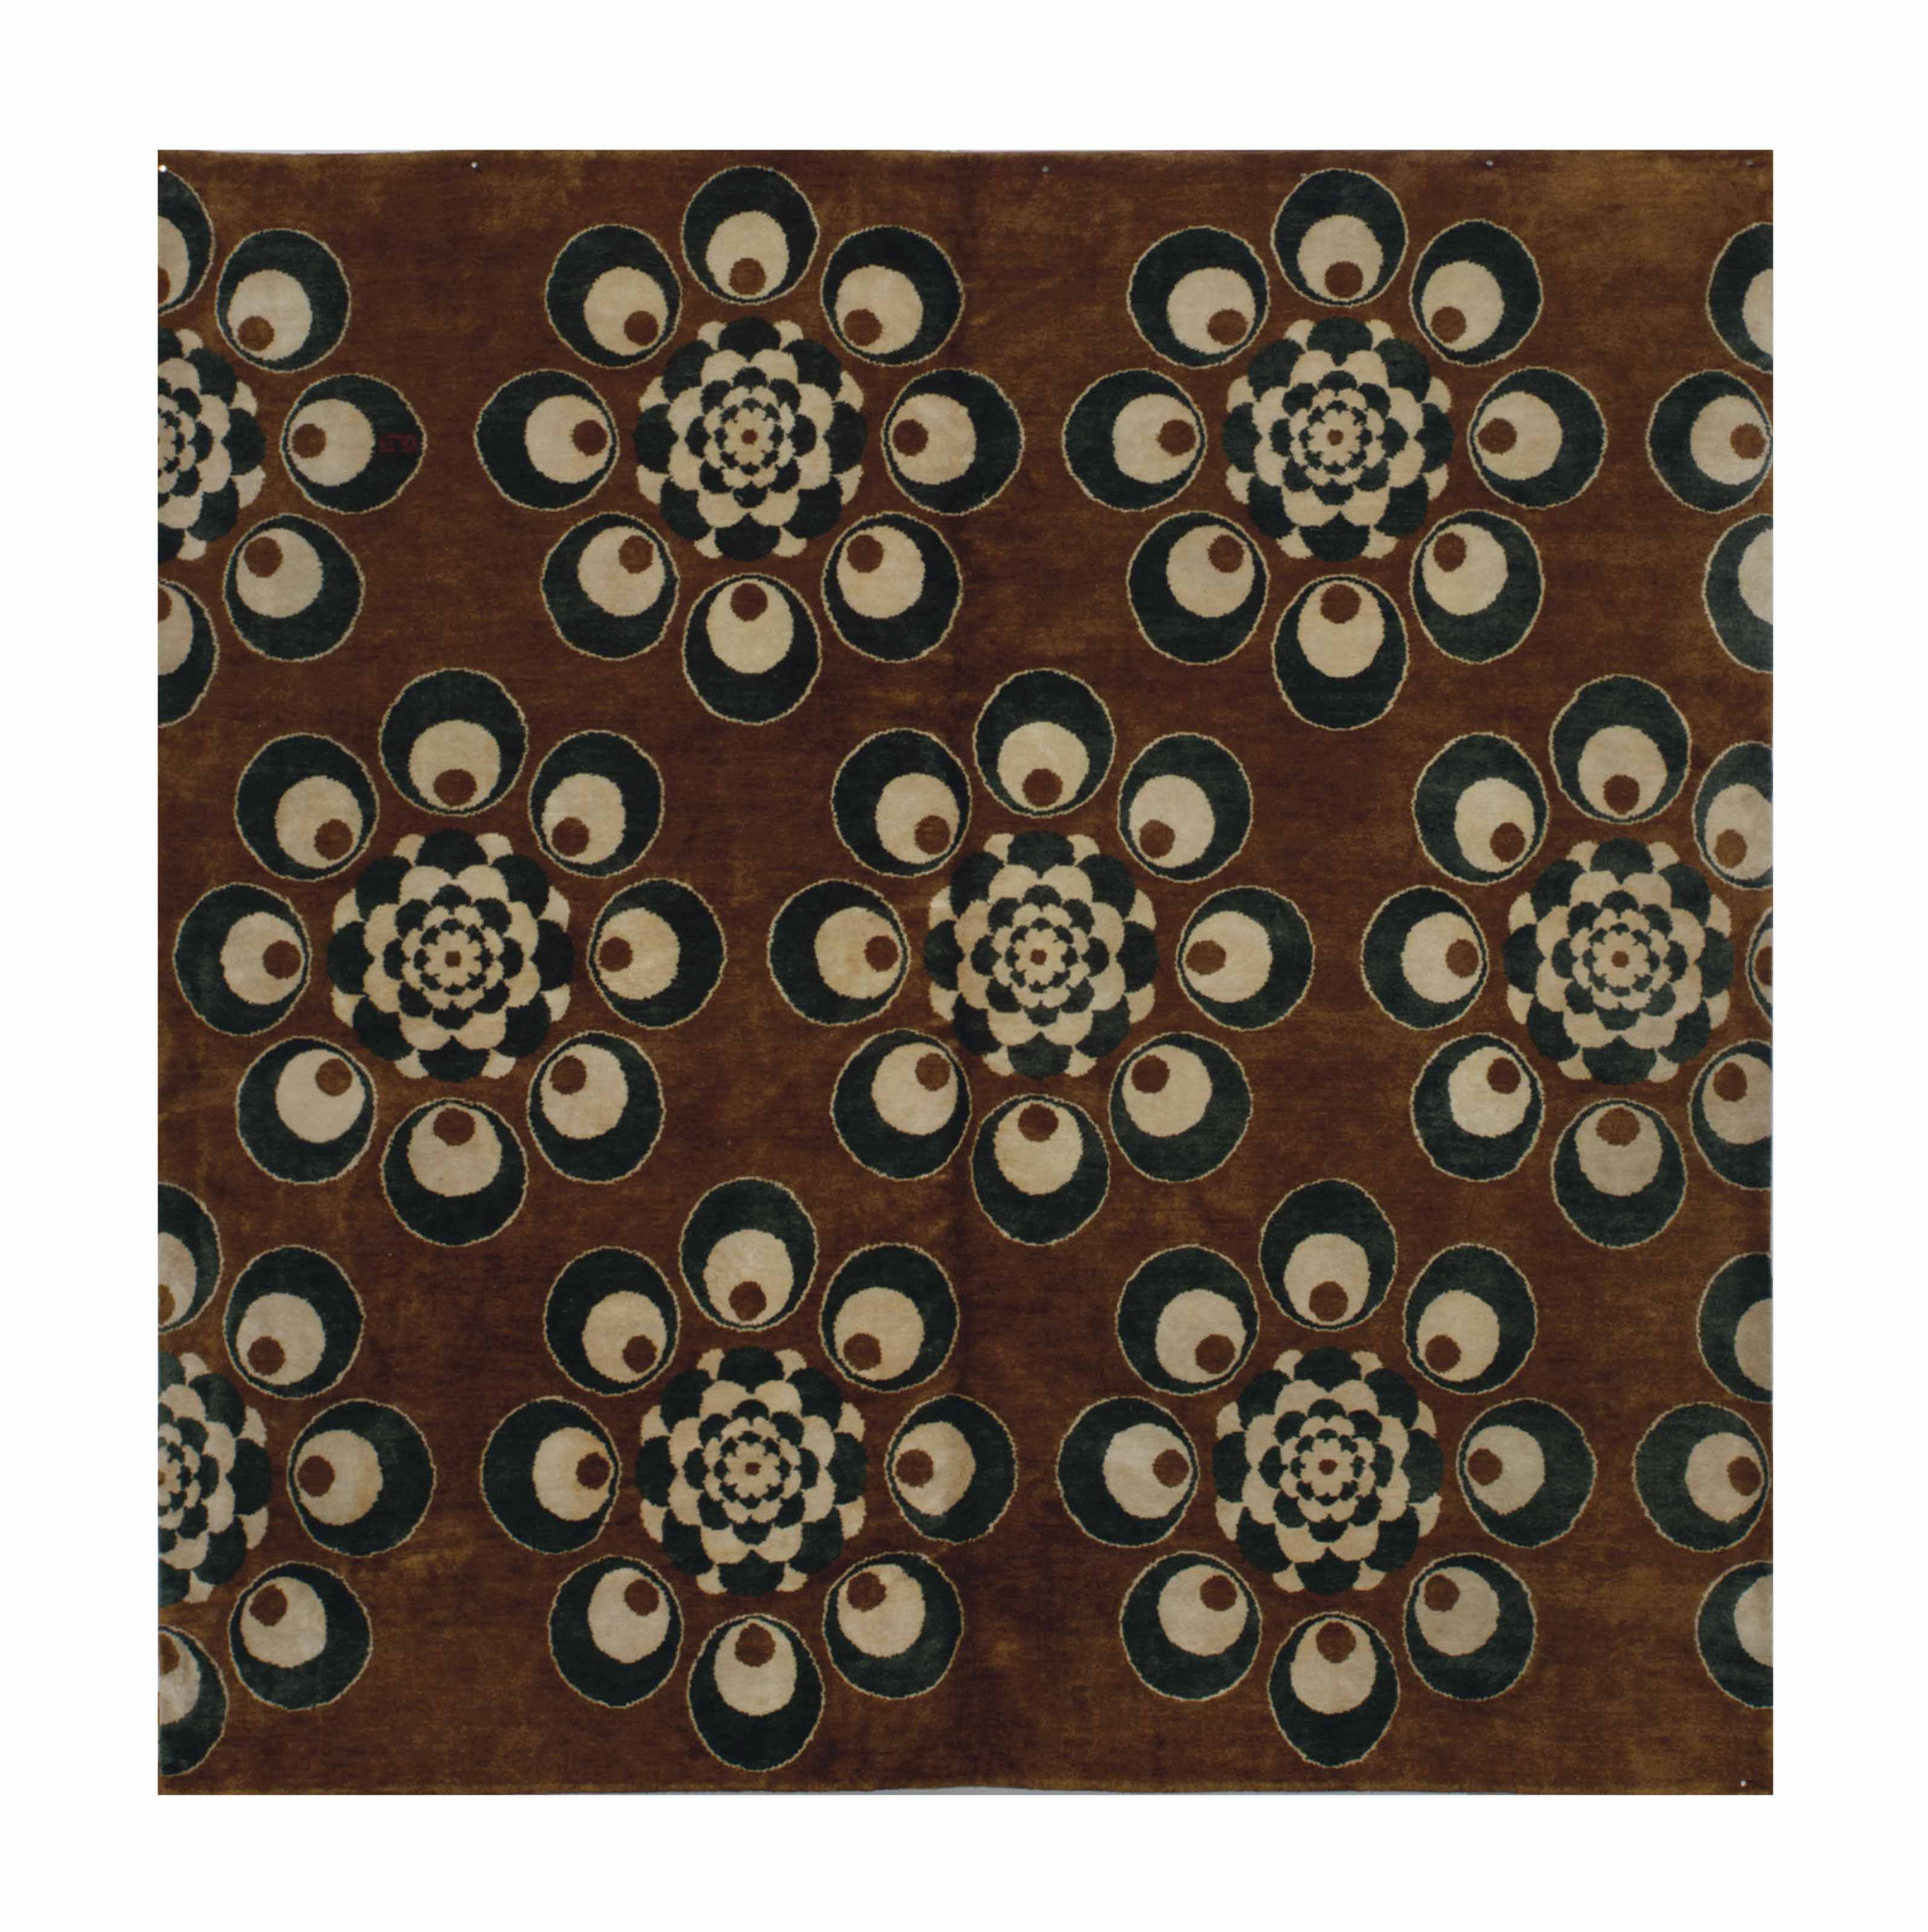 A OTTOMAN-INSPIRED CARPET,